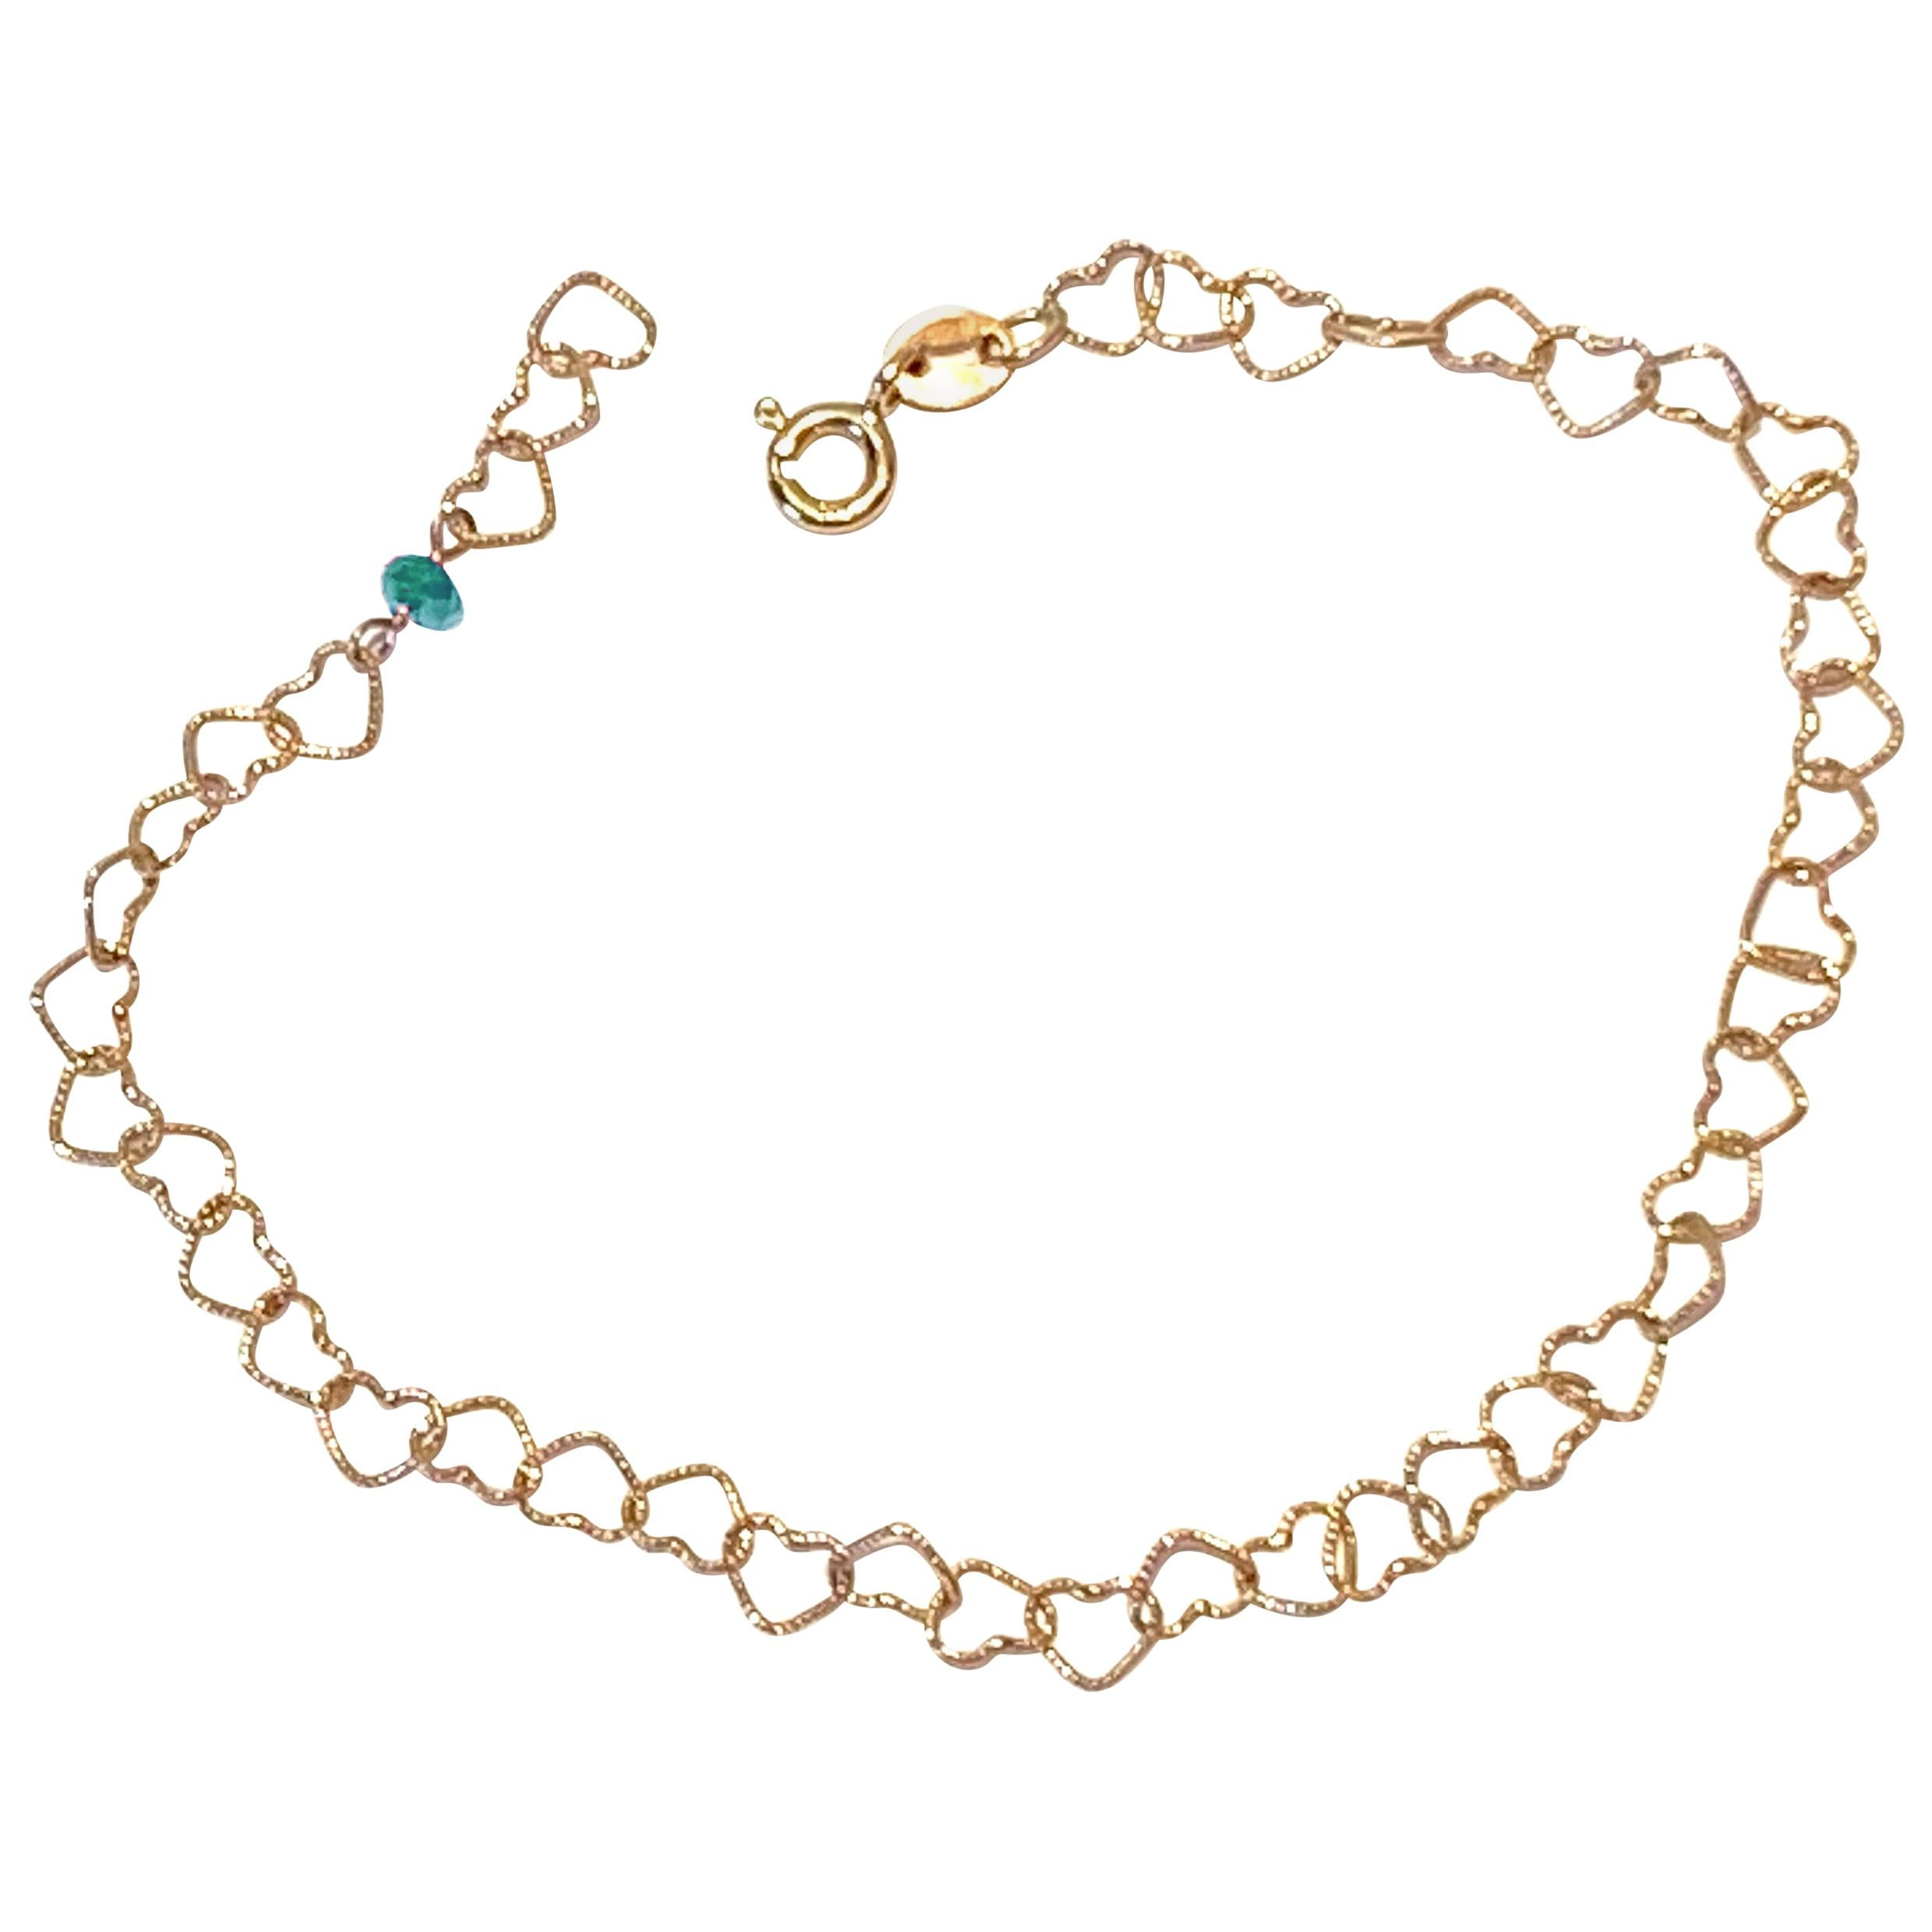 "Romantic Style 18Karat Yellow Gold 0.35Karat Emerald ""Little Hearts"" Bracelet"